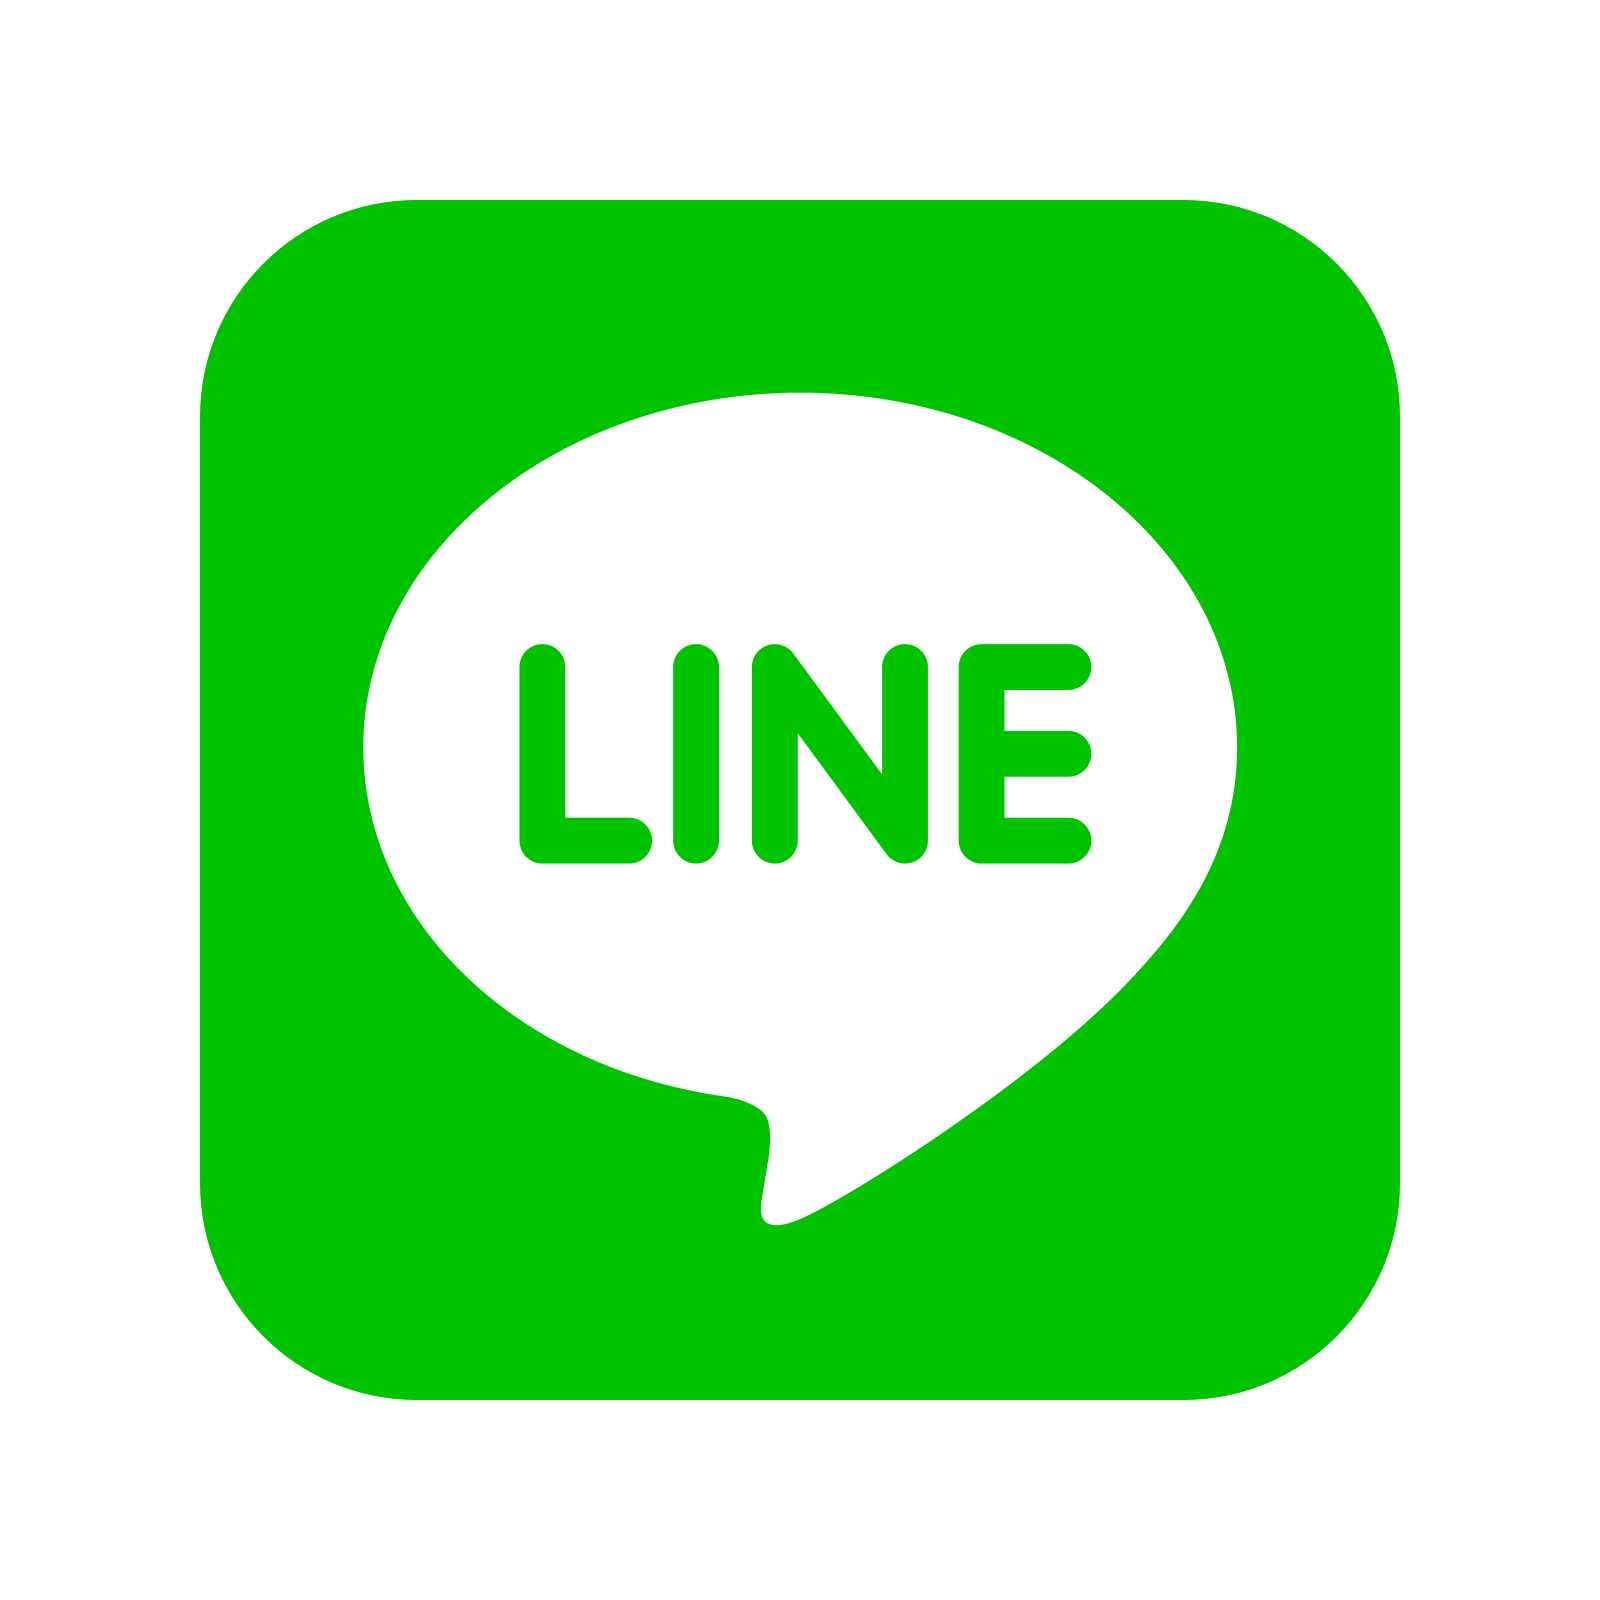 Png to icon. Line free download and